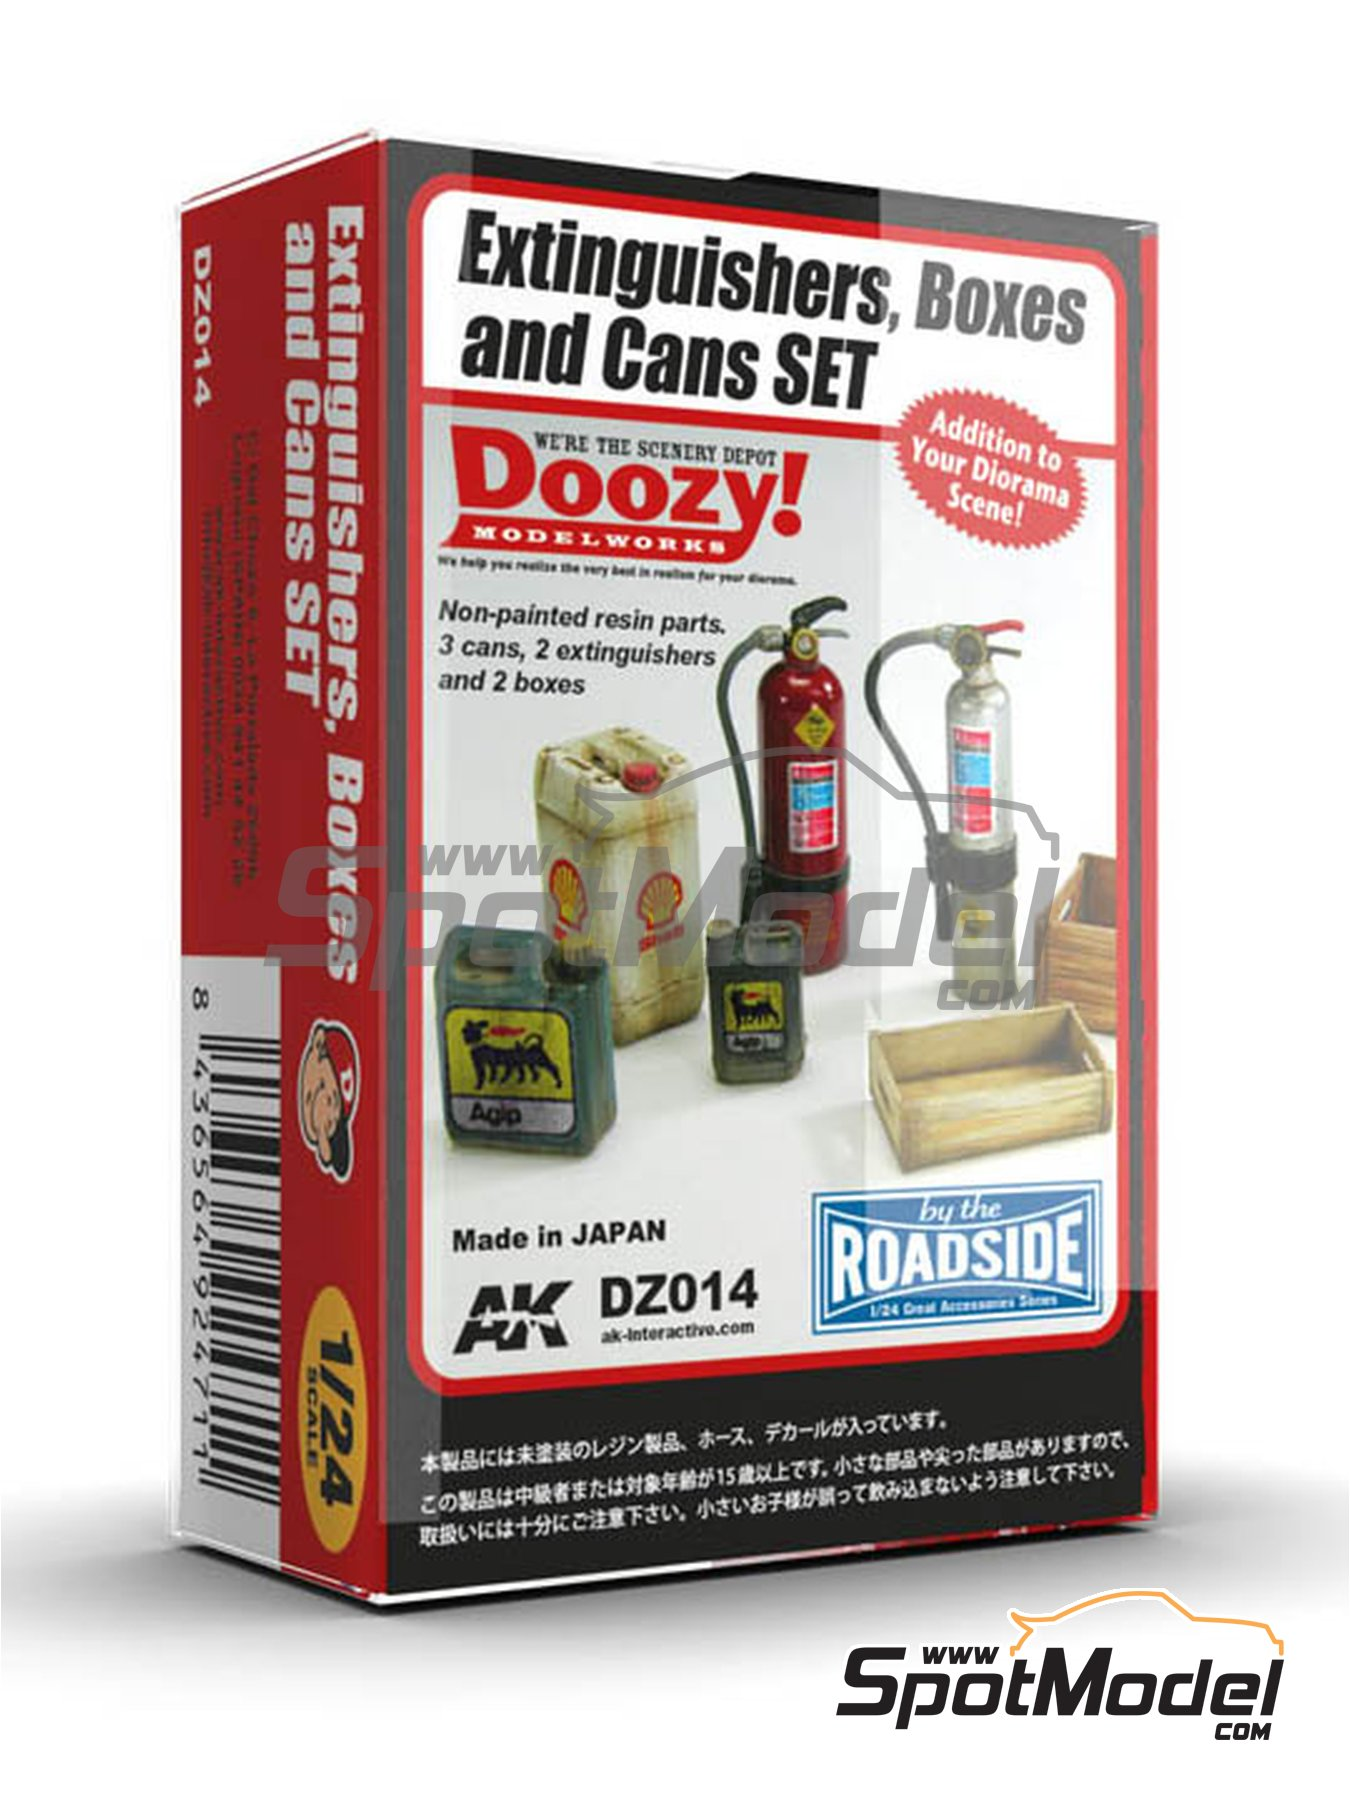 Extinguishers, boxes and cans set | Model kit in 1/24 scale manufactured by Doozy Modelworks (ref. DZ014) image